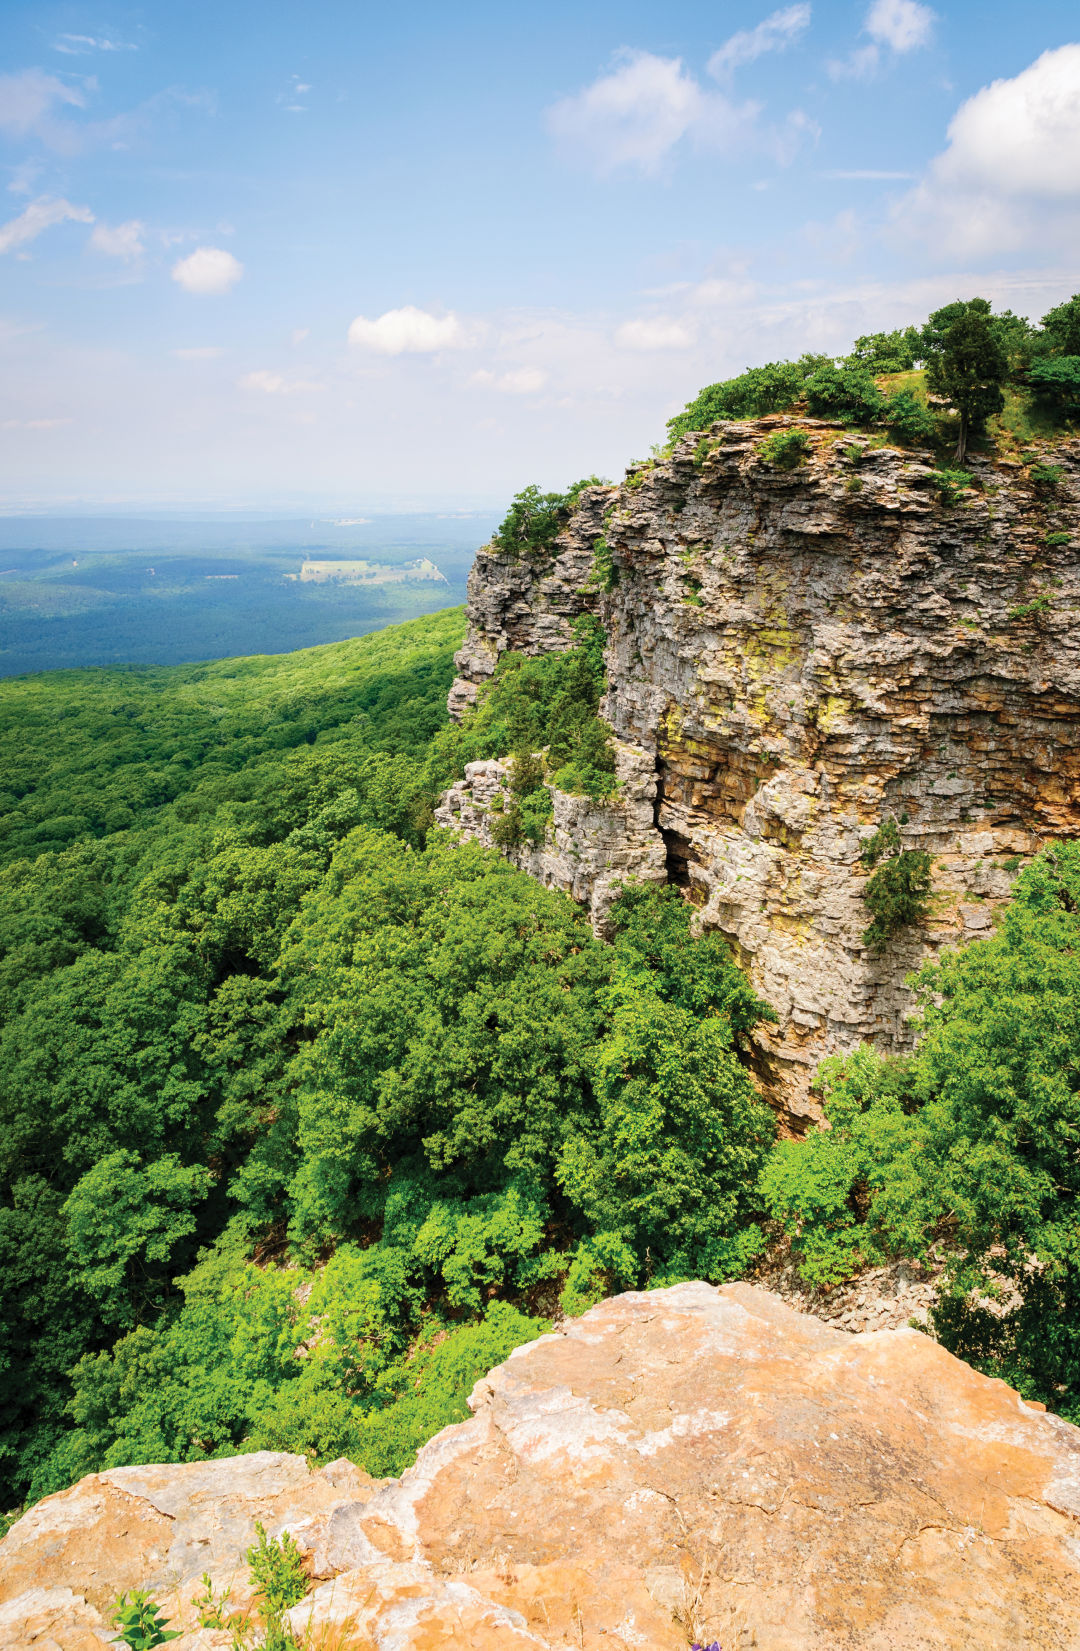 0717 mountain getaways mount magazine arkansas zuwltj